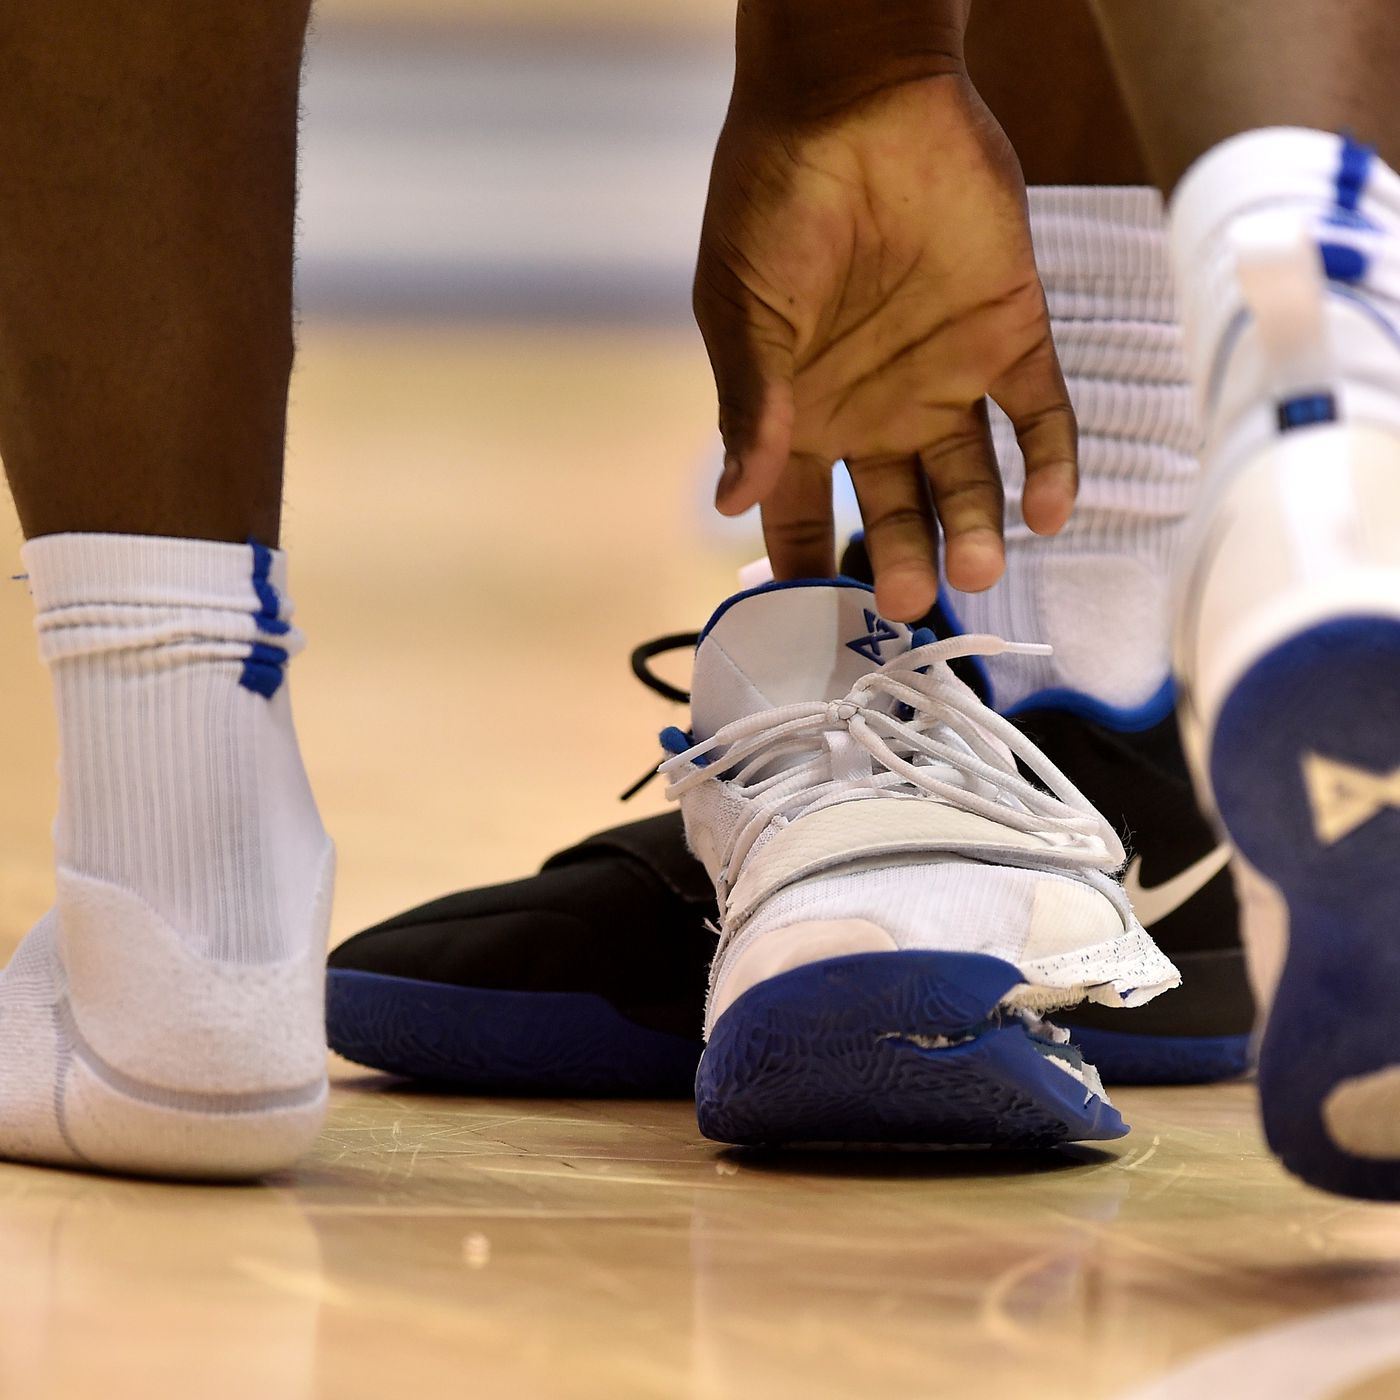 meet 729c9 59bdd Zion Williamson's shoe: 5 questions about the Nike line that ...